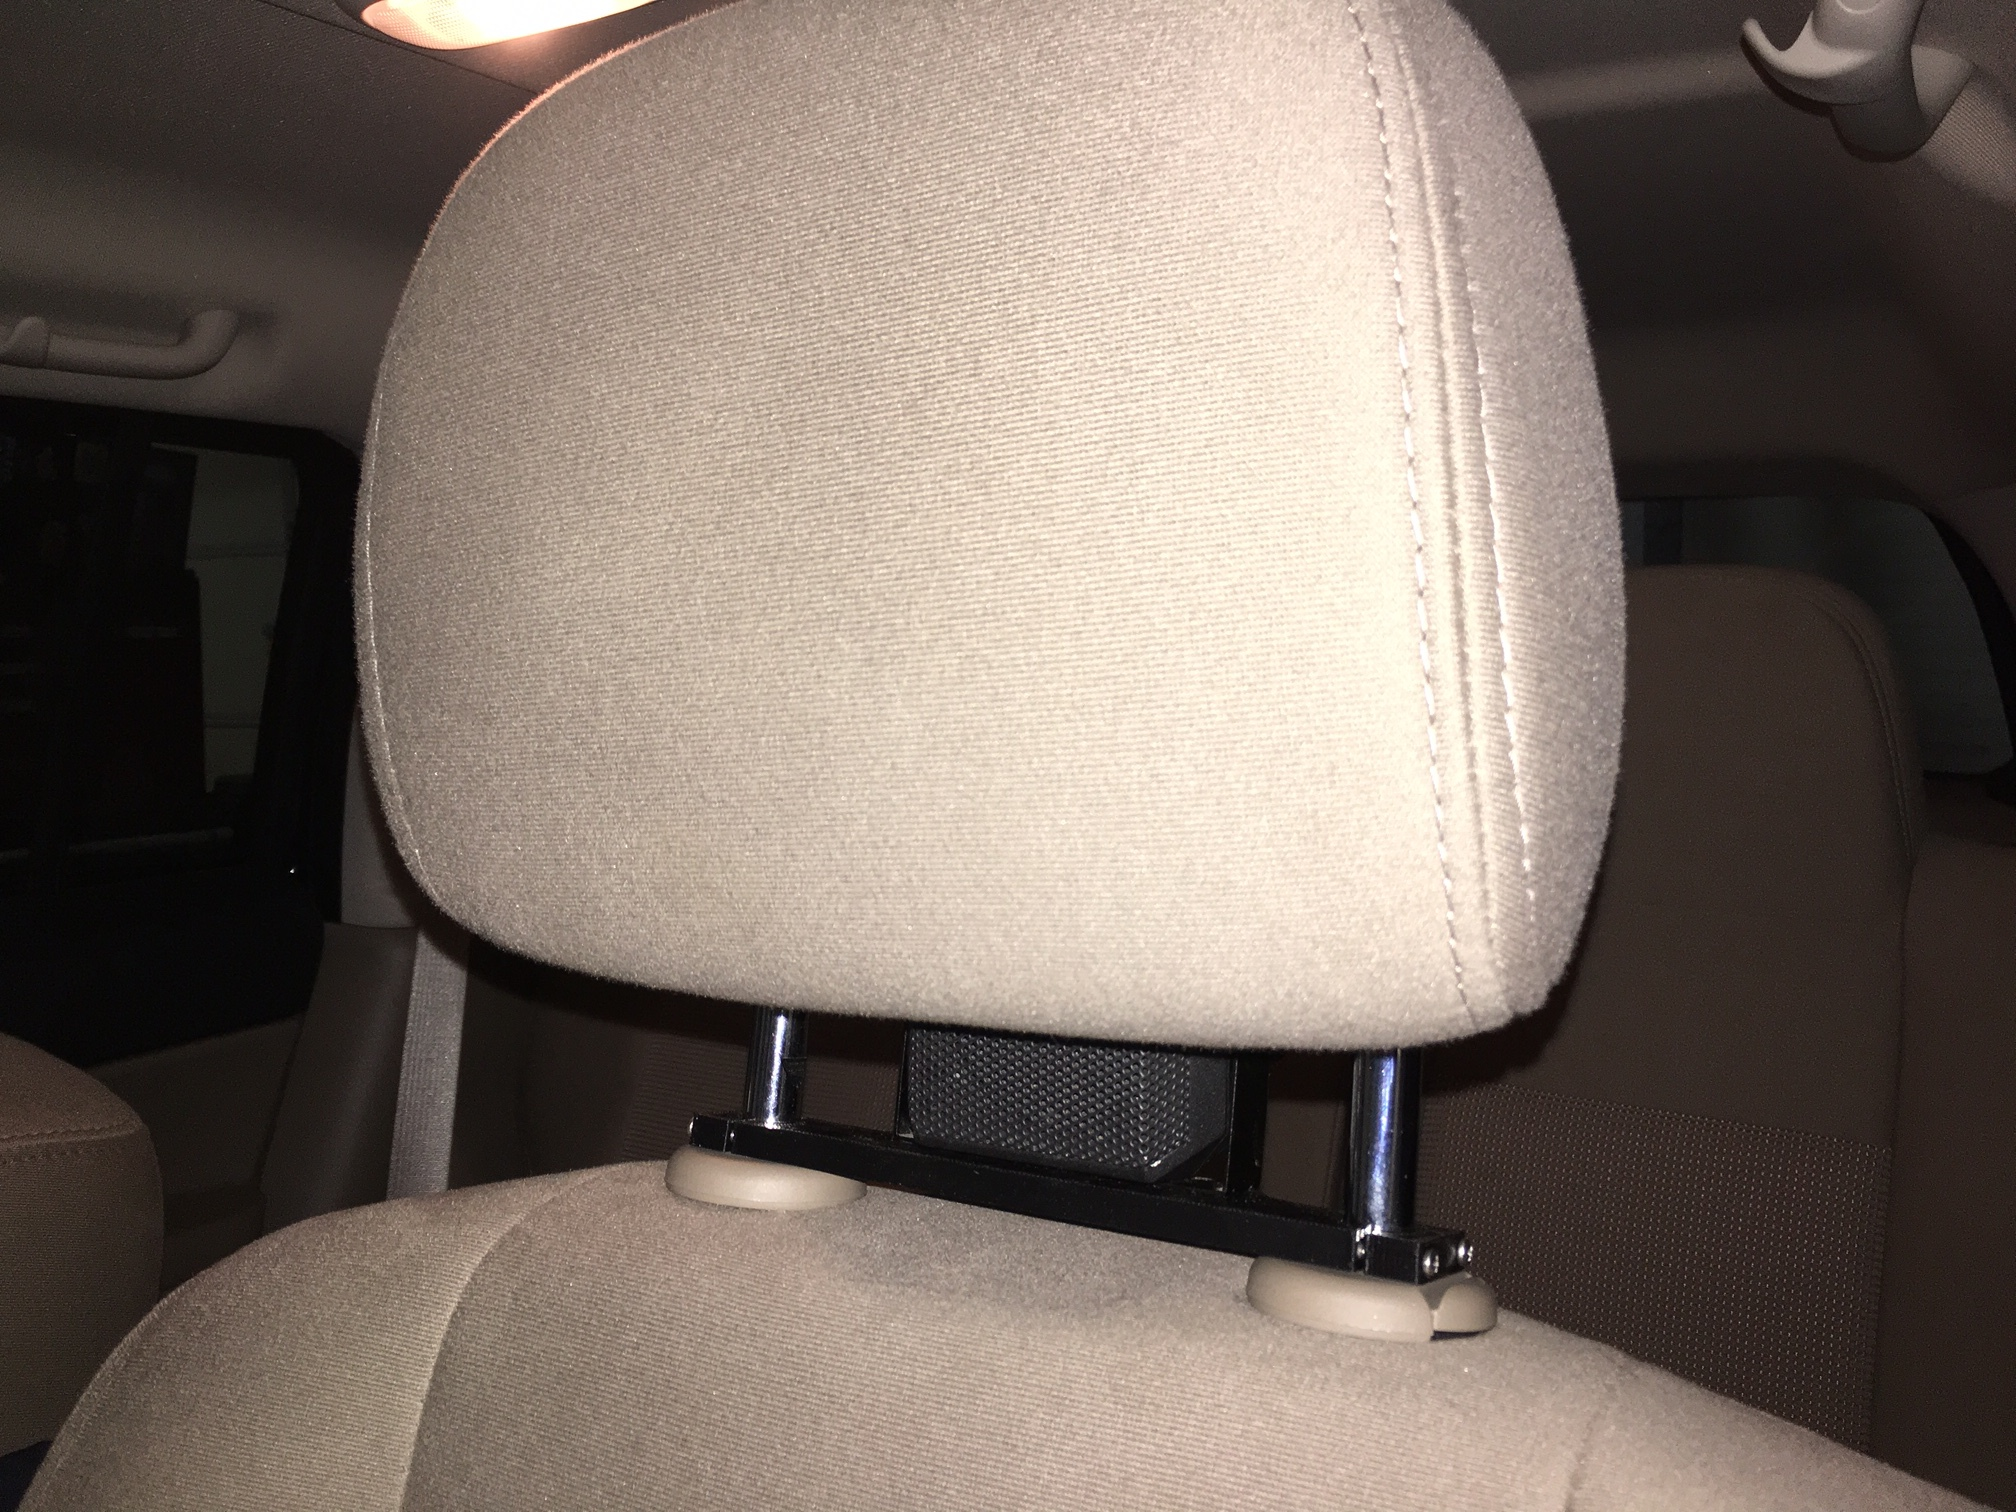 Here it is installed in my Jeep Patriot. Unless you were looking for it most people would never even know that it is there.